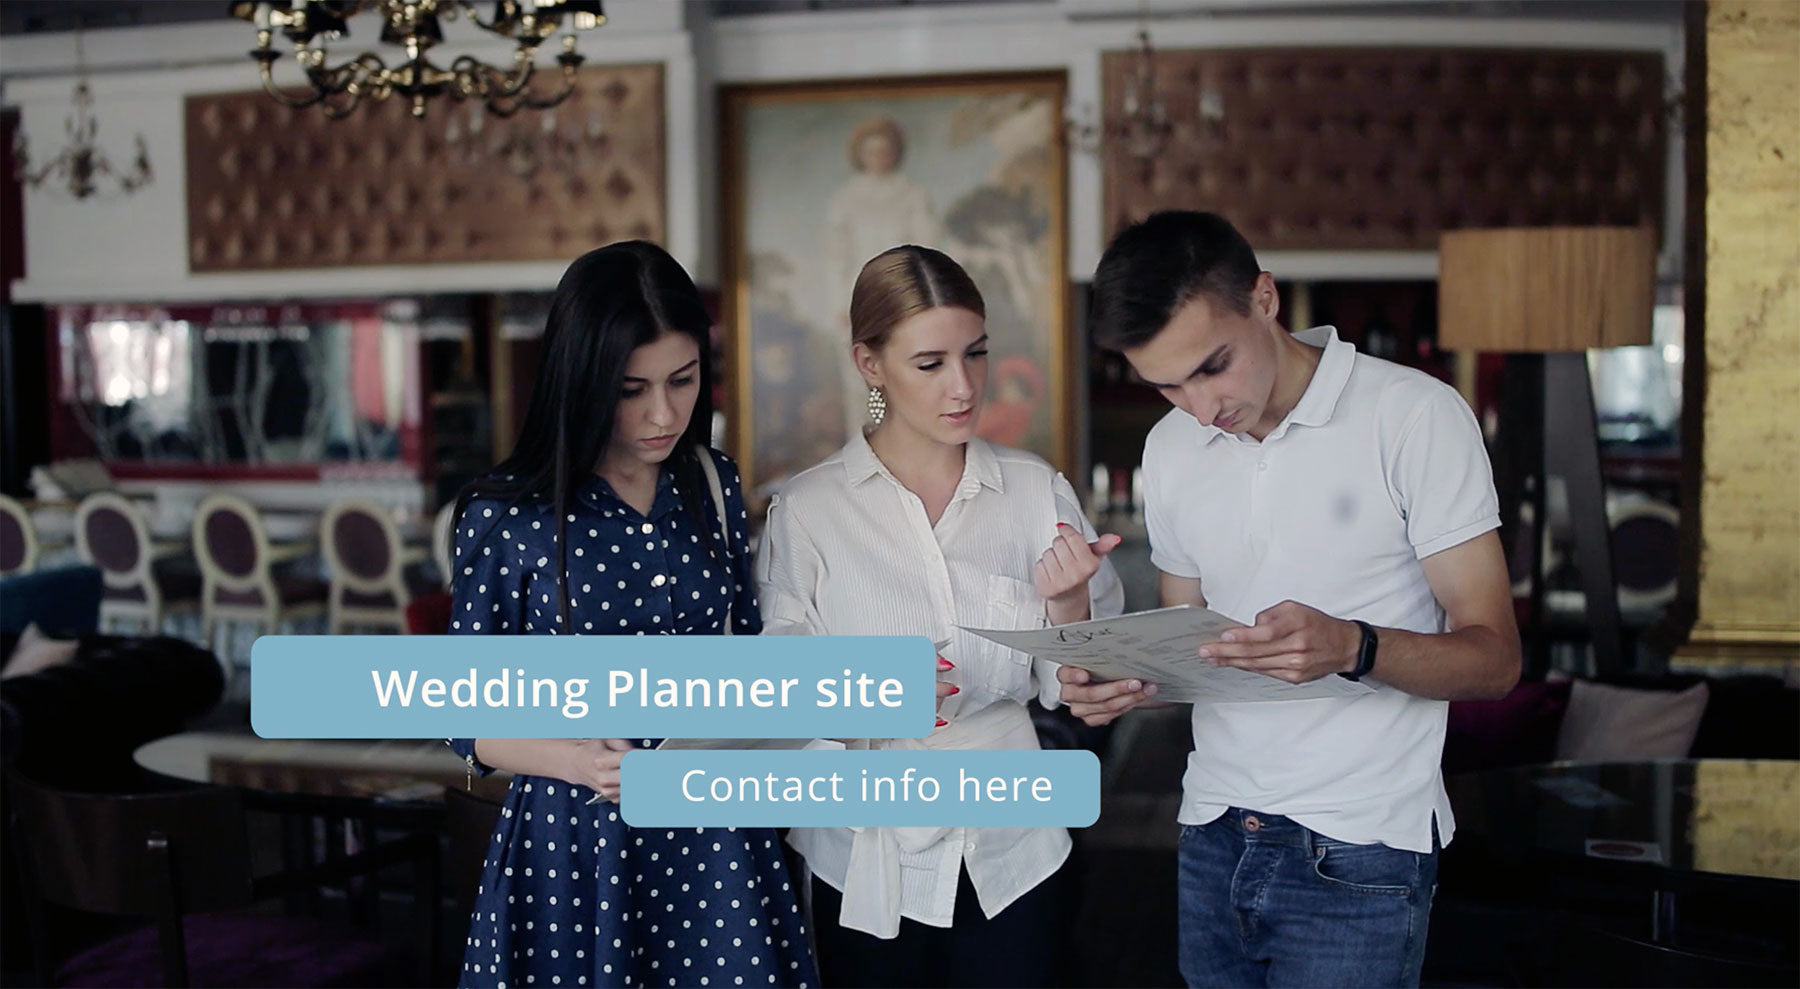 Wedding Planner or Services Ad Sample 2